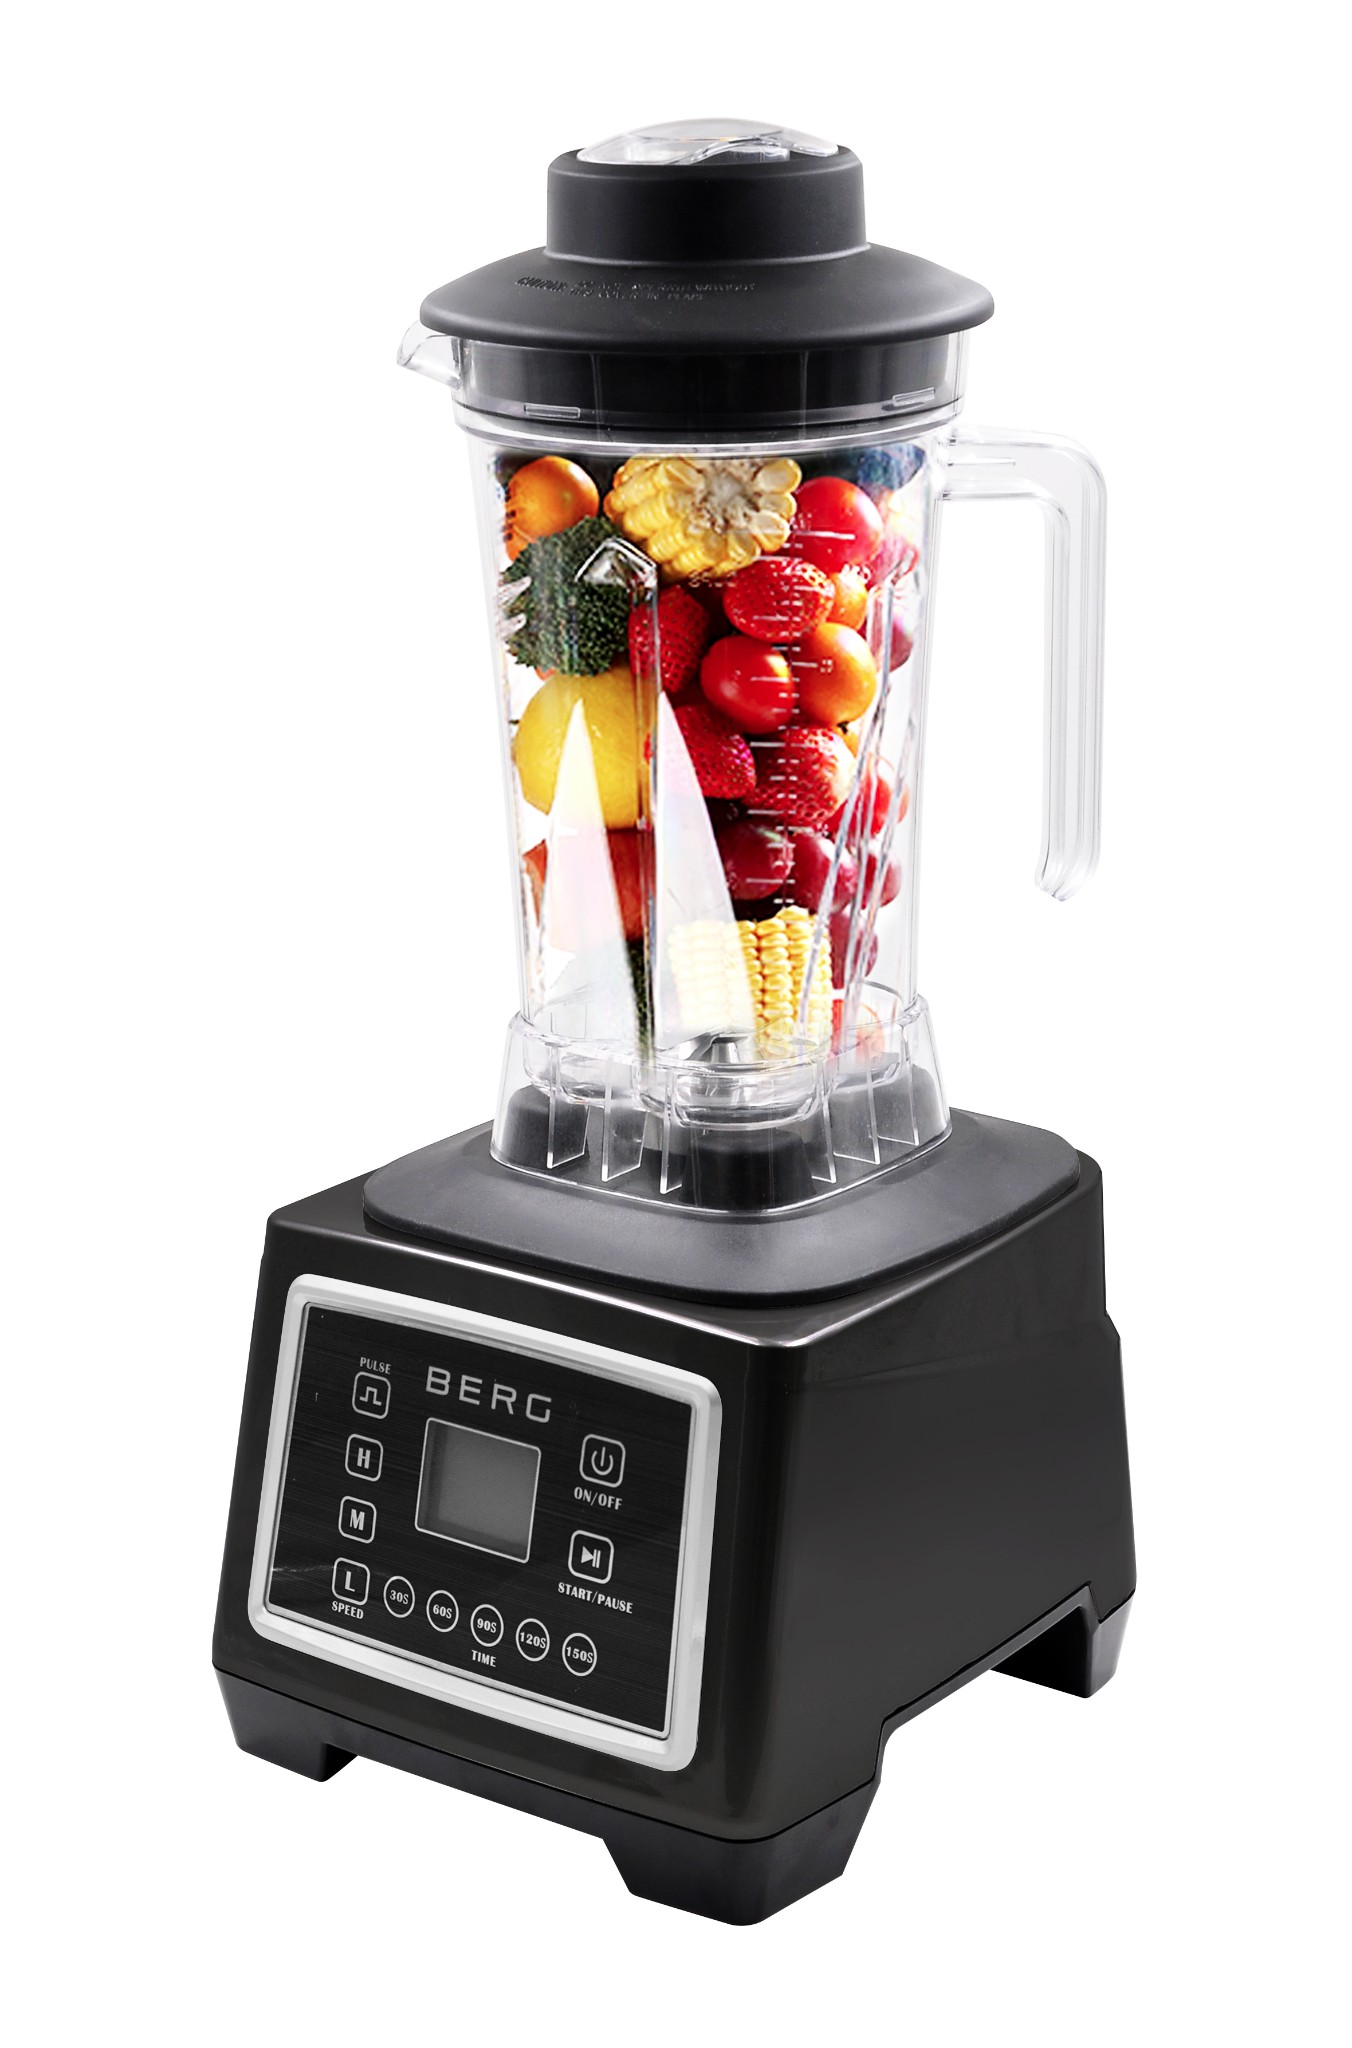 BERG 2200W 3HP SMART COMMERCIAL FOOD BLENDER SMOOTHIE MAKER ICE CRUSHER